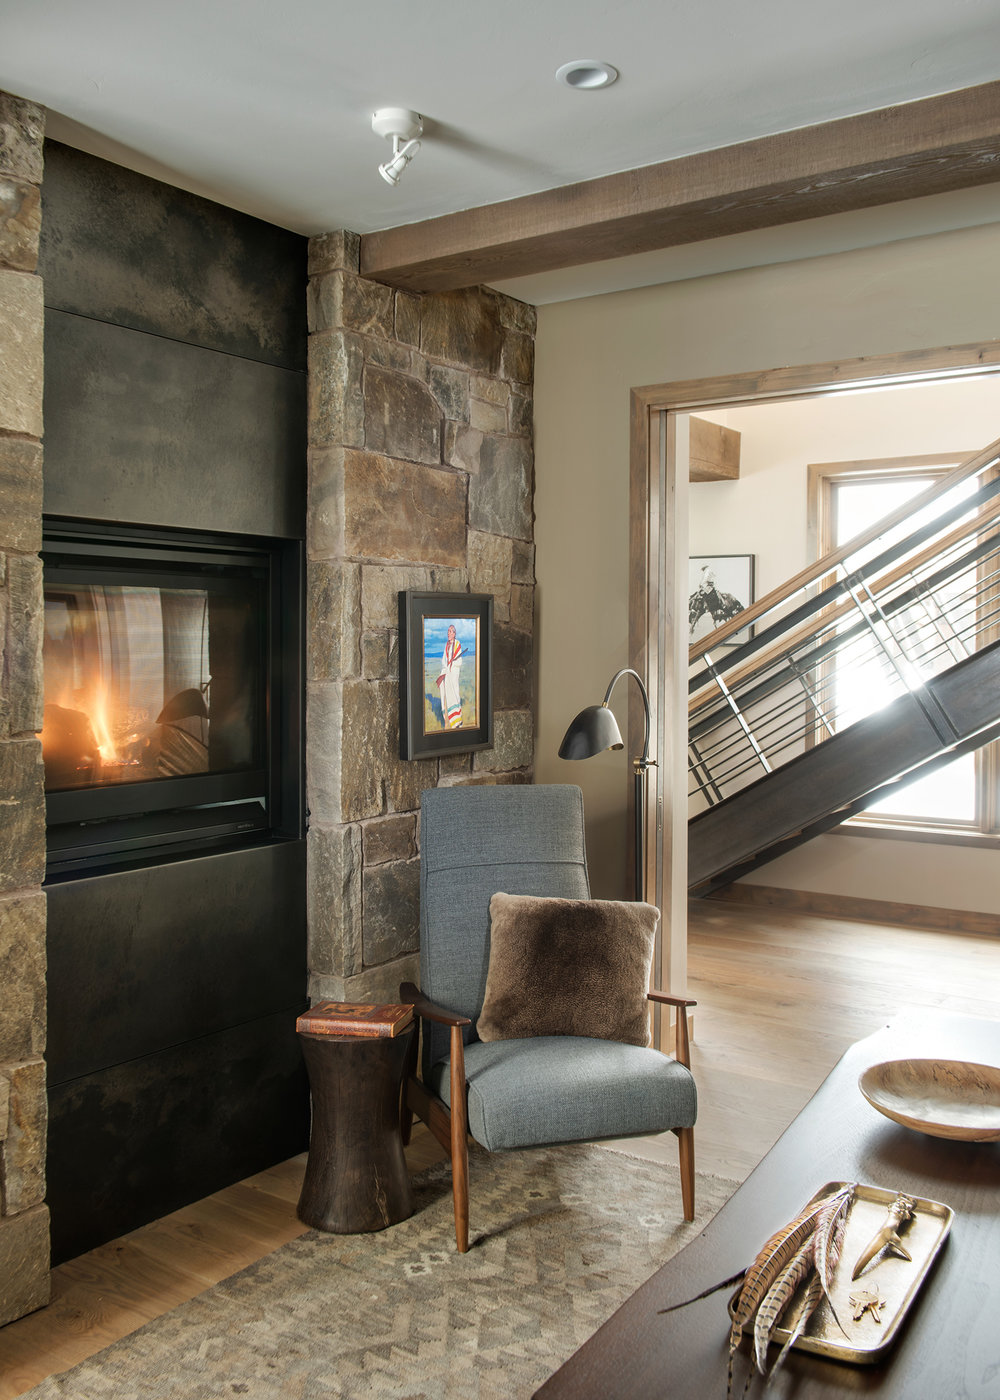 Every detail of this home was well thought out.  The study, located just off the kitchen, is a special space with built in fireplace.  And those stairs in the background - another architectural success!